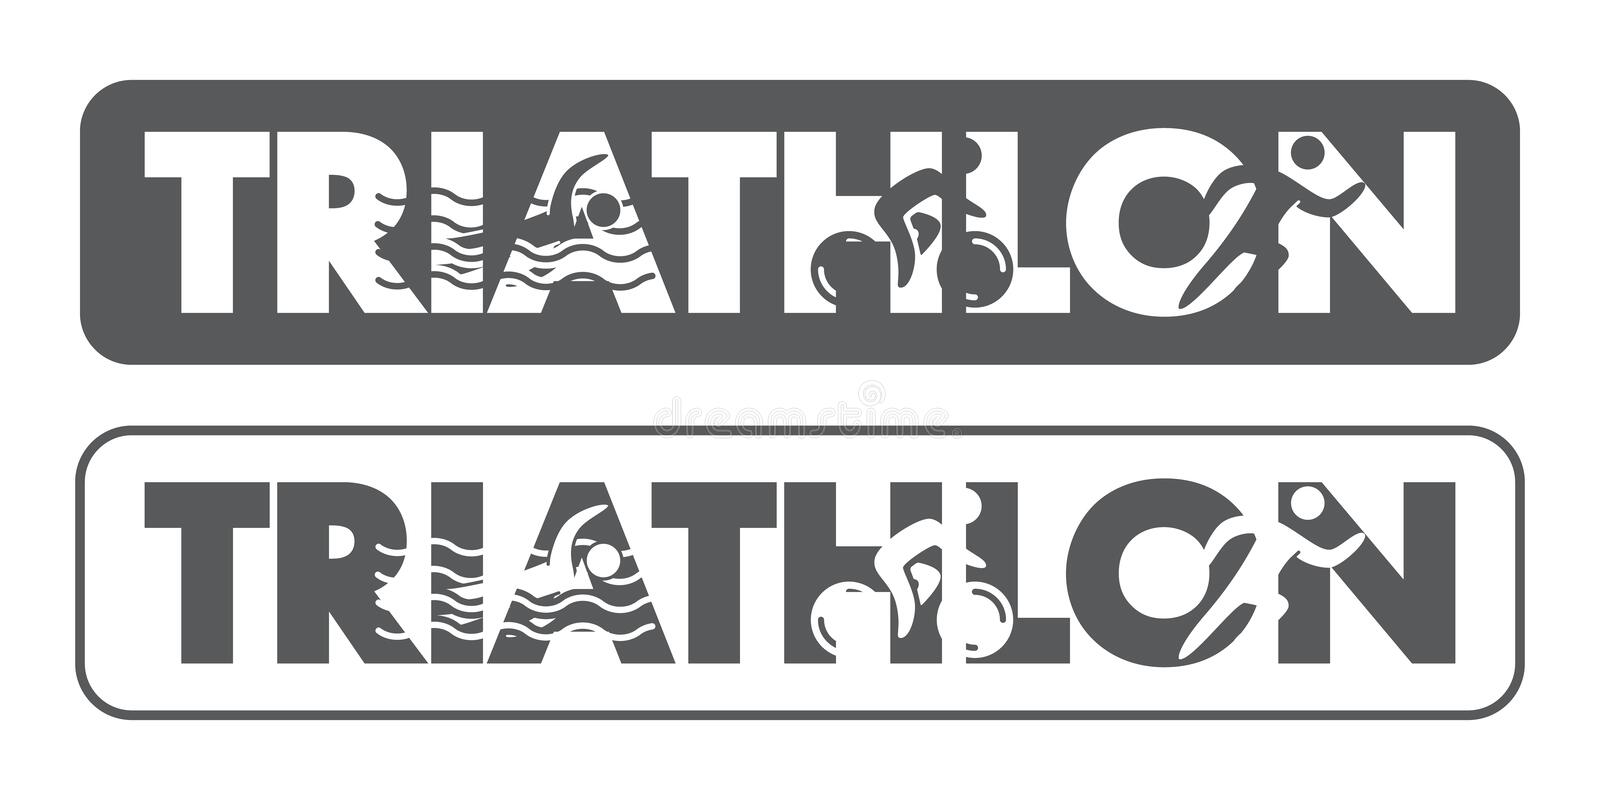 Triathlon logo and icon. Swimming, cycling, running symbols stock images